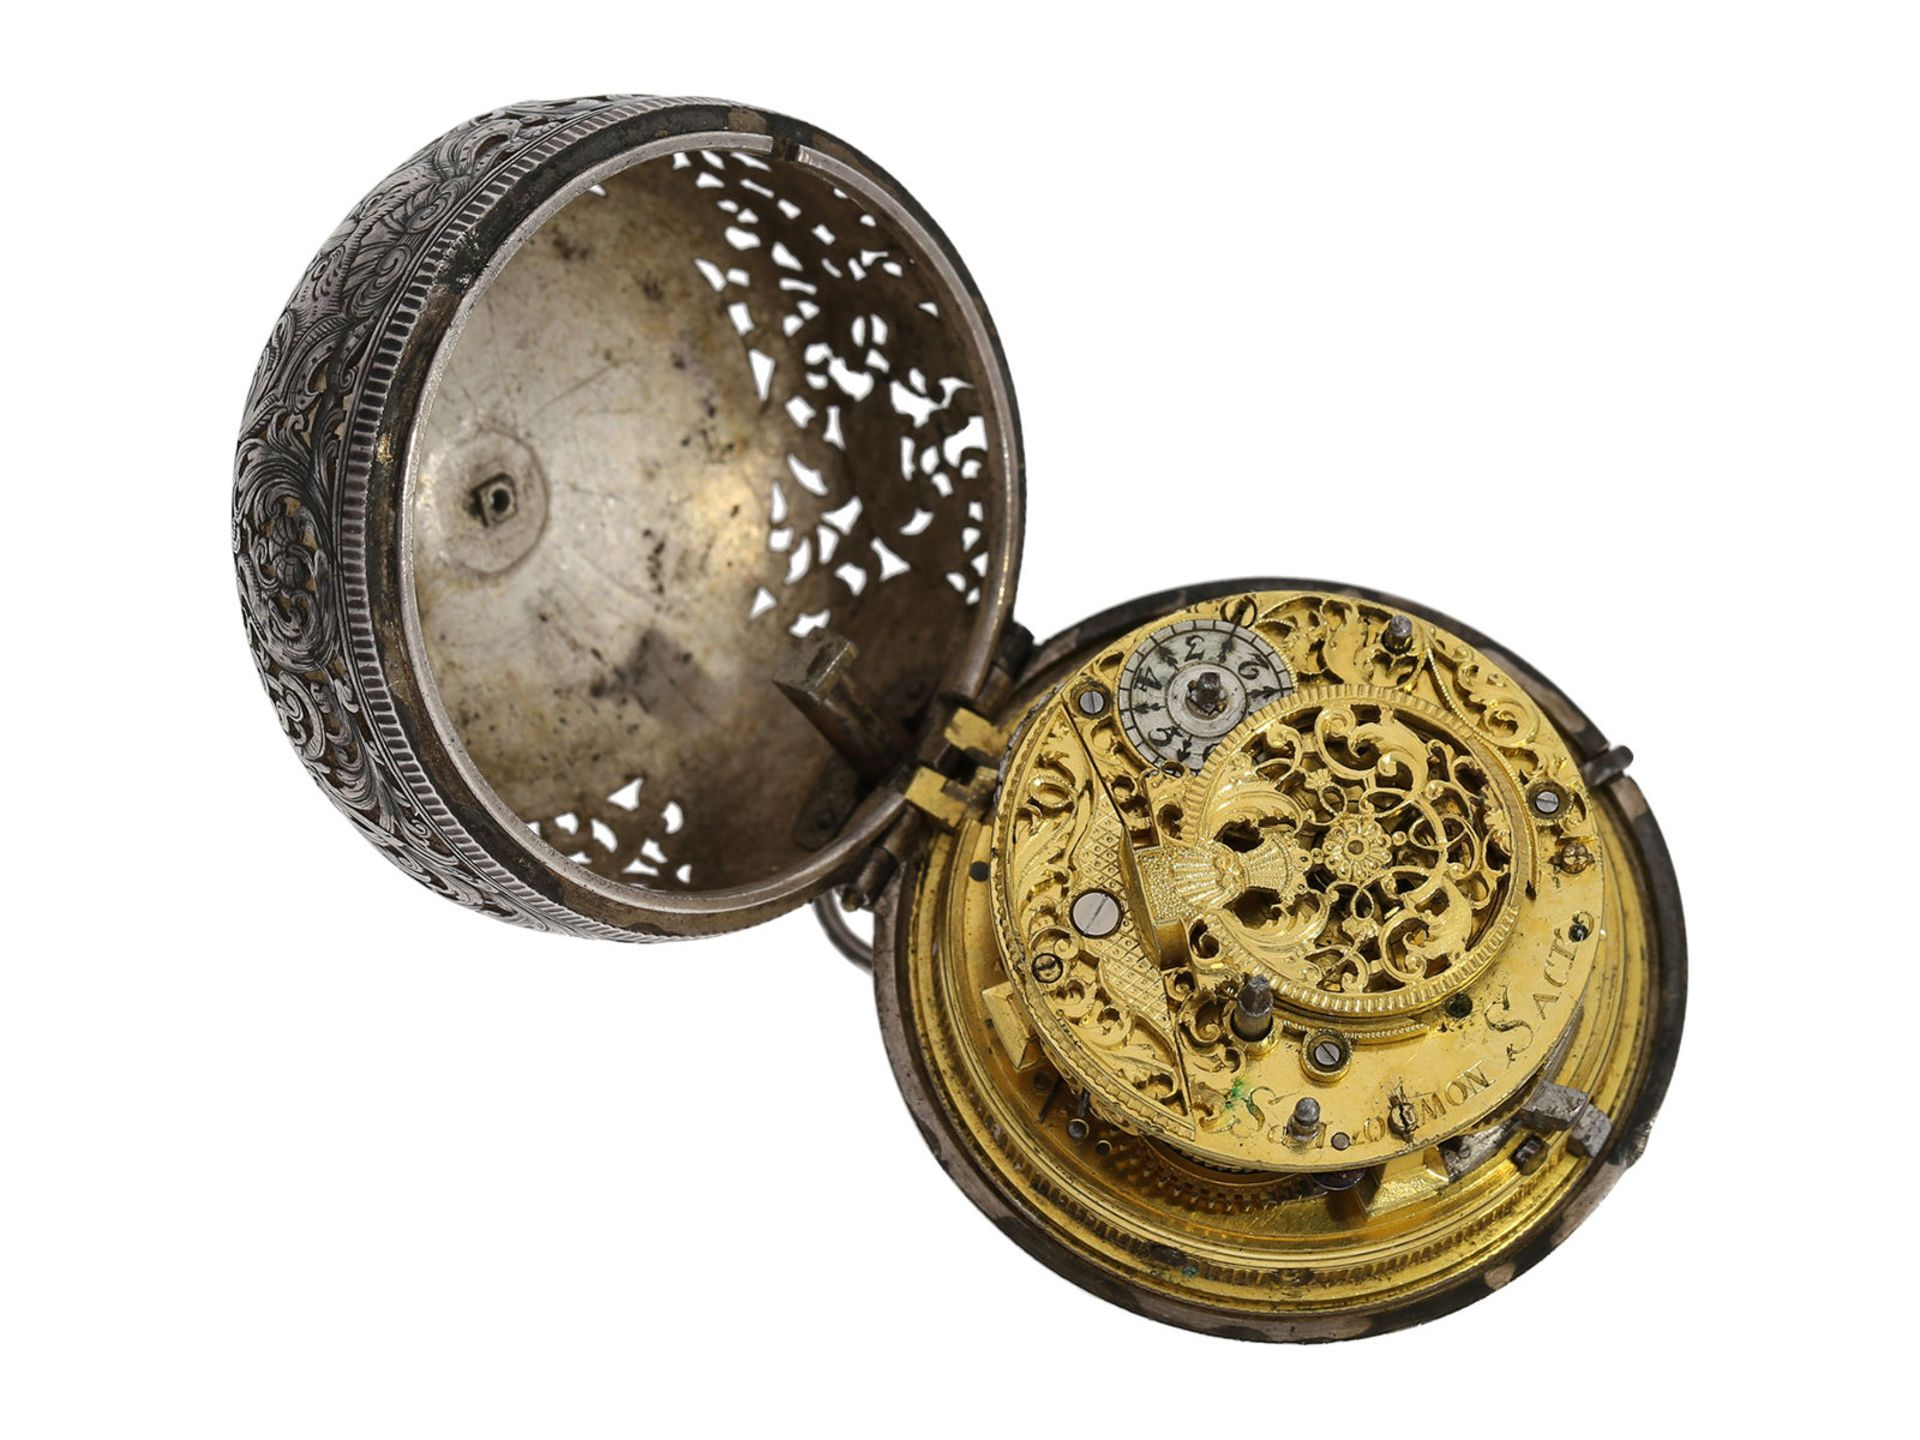 Pocket watch: Augsburg pair case repousse verge watch with relief case in exceptional quality and - Bild 7 aus 14